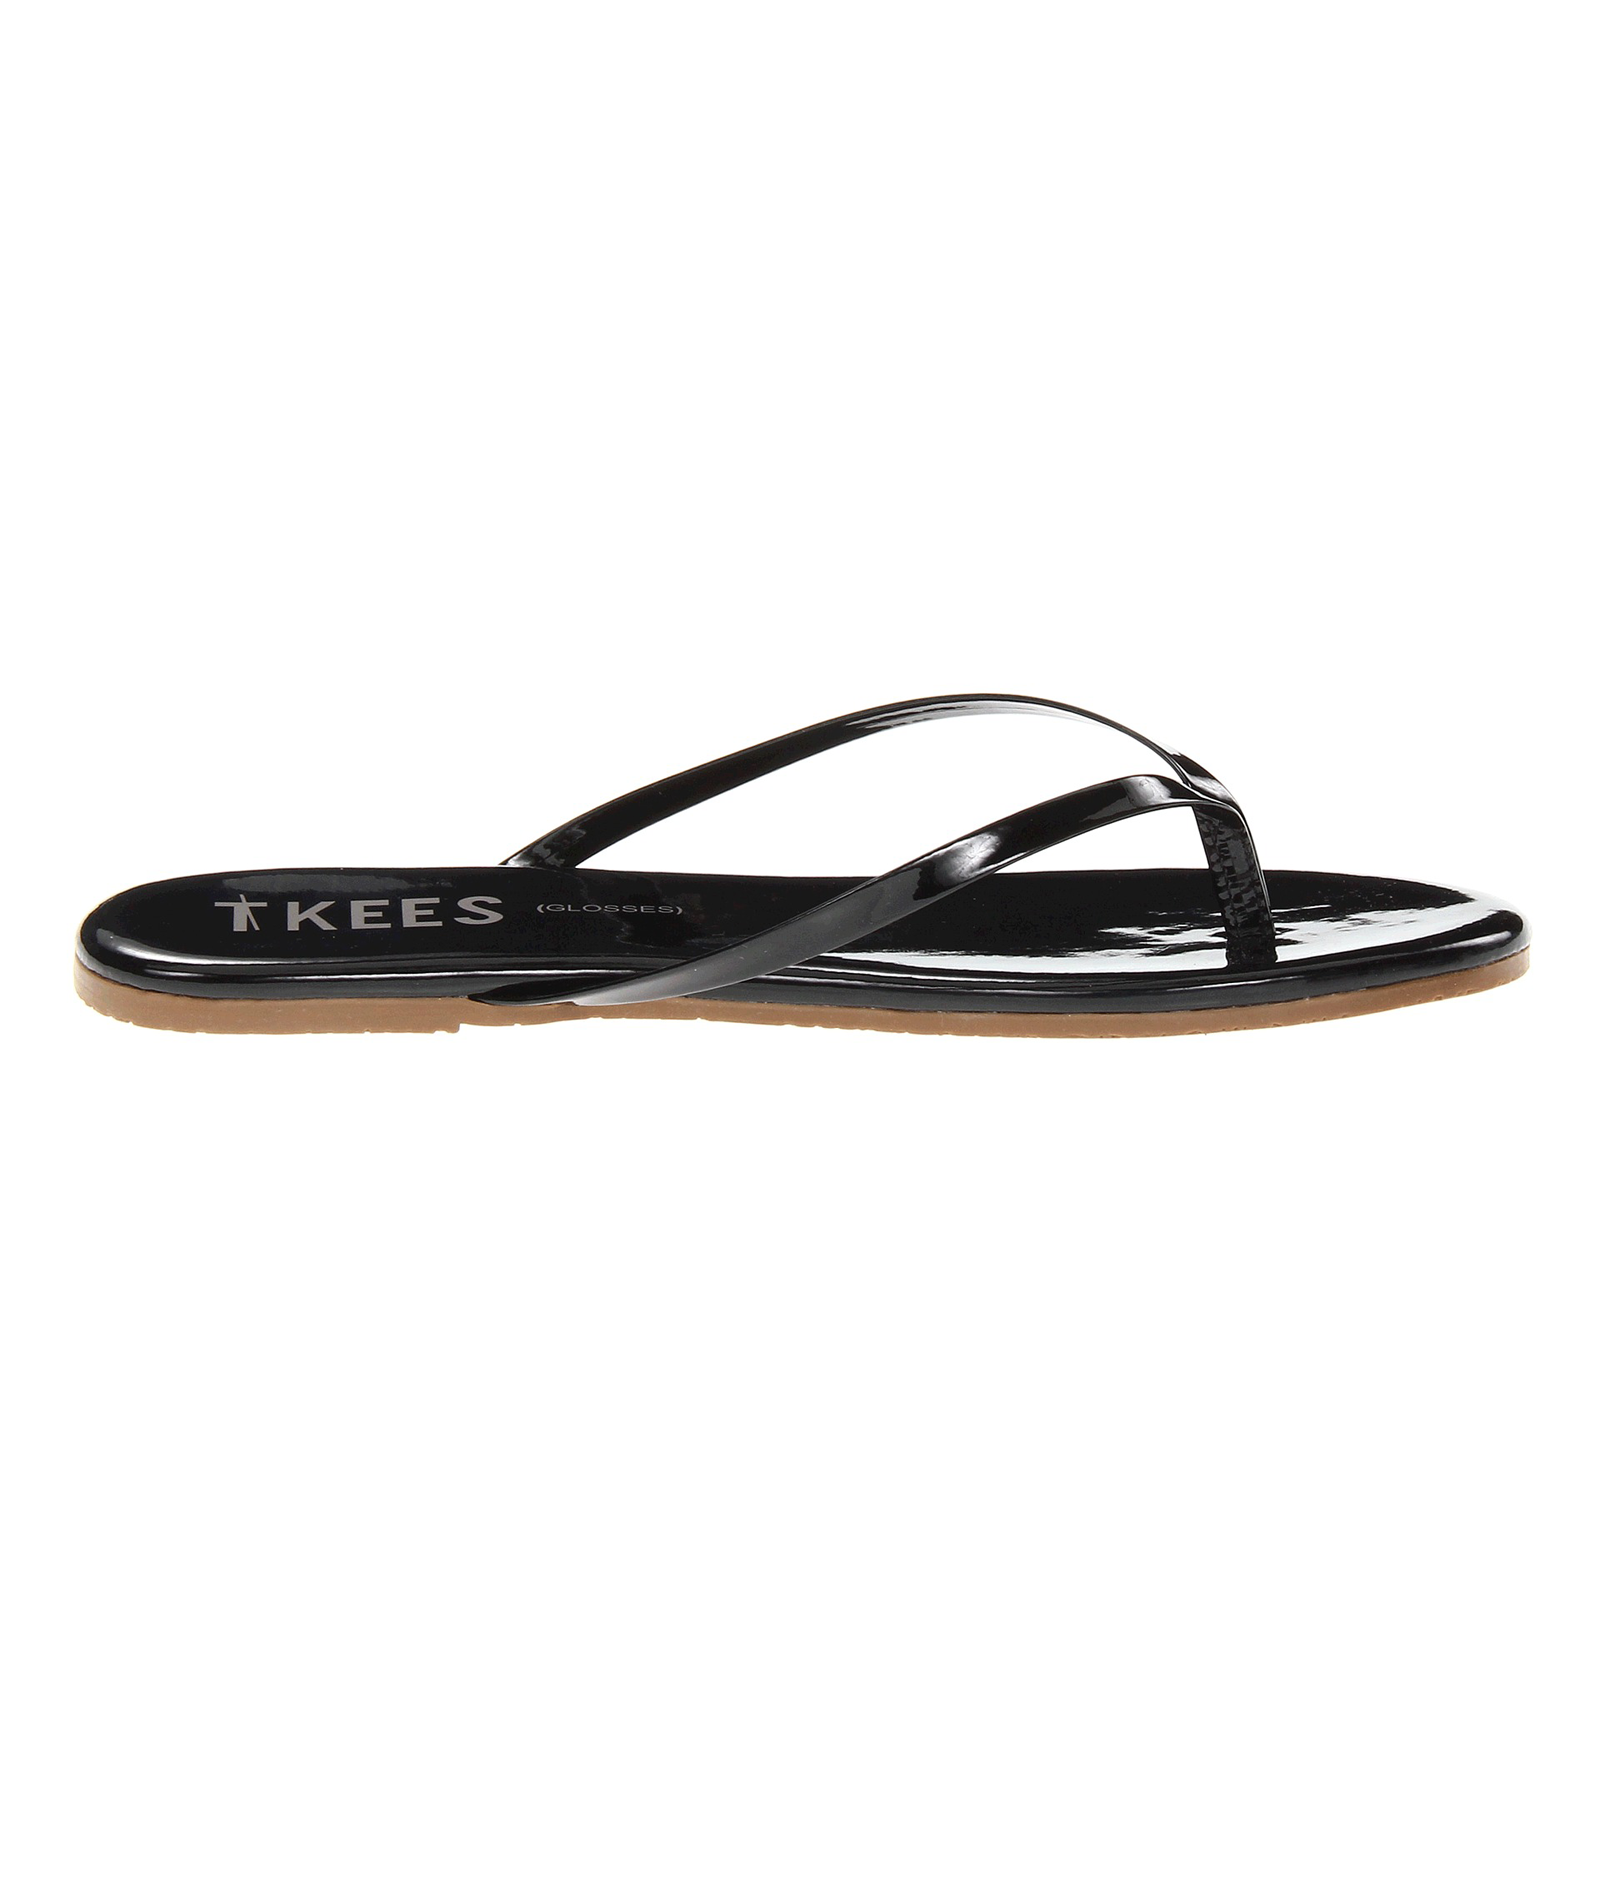 Tkees Flip Flop Glosses Licorice, Side